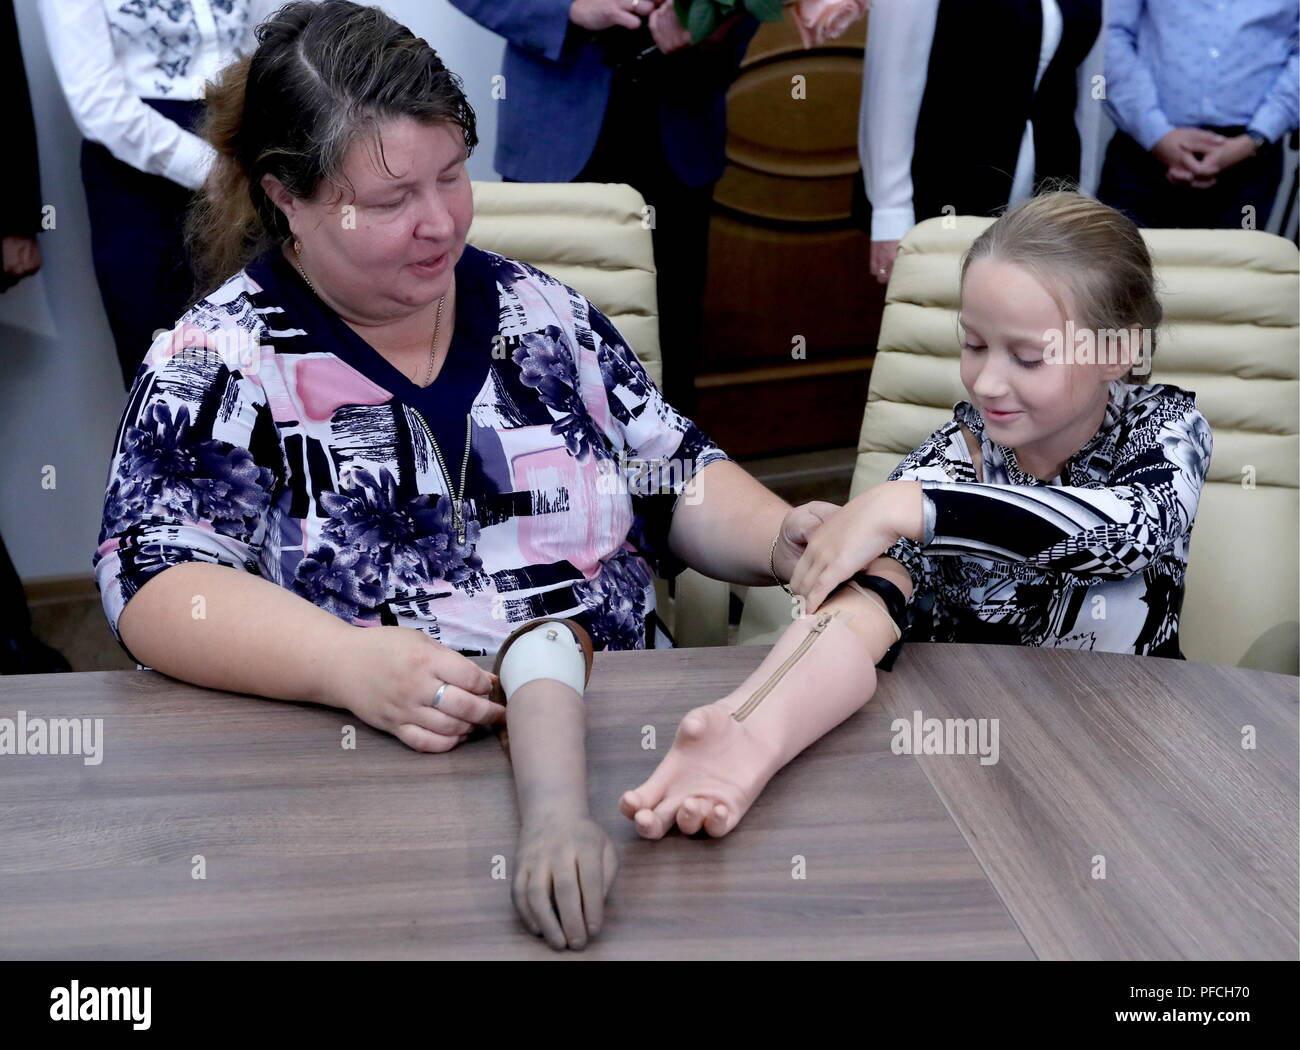 Veliky Novgorod, Russia. 21st Aug, 2018. VELIKY NOVGOROD, RUSSIA - AUGUST 21, 2018: Born with a congenital hand malformation, Maria Gaidukova (R), 9, with mother receive a modular bionic prosthetic hand after two weeks of tests; developed by Veliky Novgorod's Tekhbionik scientific research company led by engineer Stanislav Muravyov (not pictured), and unparalleled in Russia, the prosthesis features three different grip patterns controlled by electrical impulses in an operator's muscles. Alexander Demianchuk/TASS Credit: ITAR-TASS News Agency/Alamy Live News Stock Photo